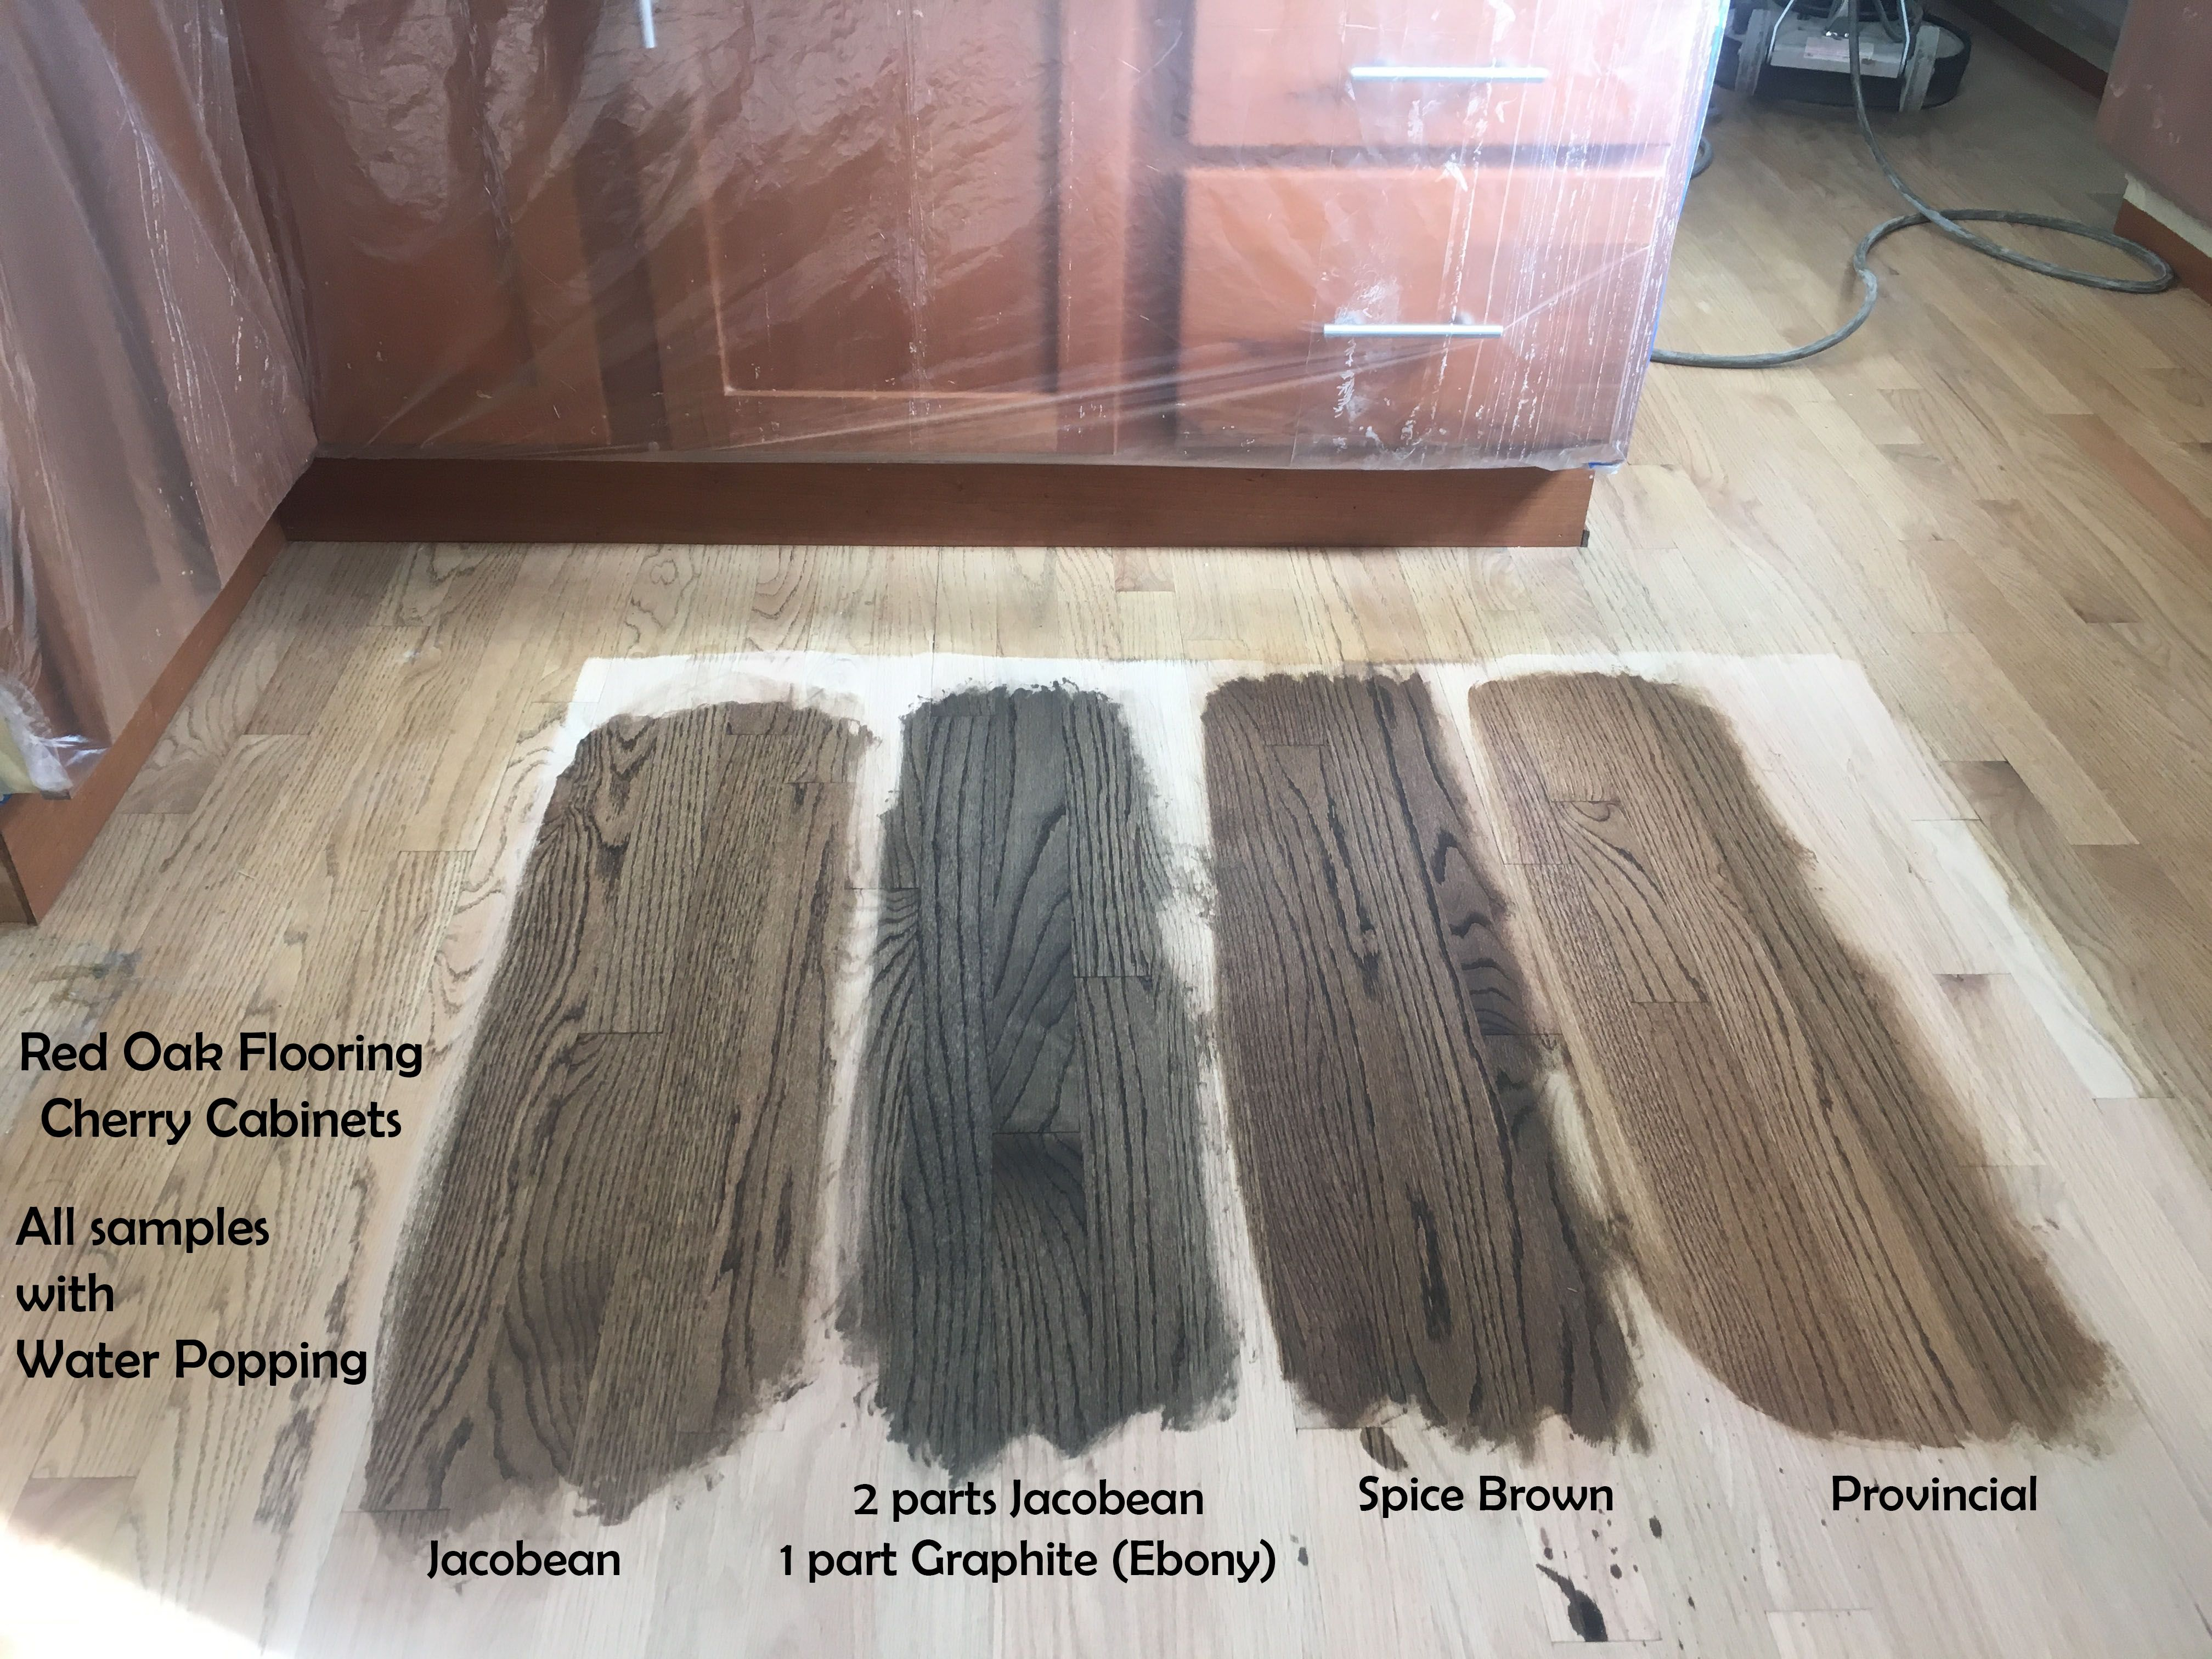 Red oak flooring stain options with Cherry Cabinets. Water ...